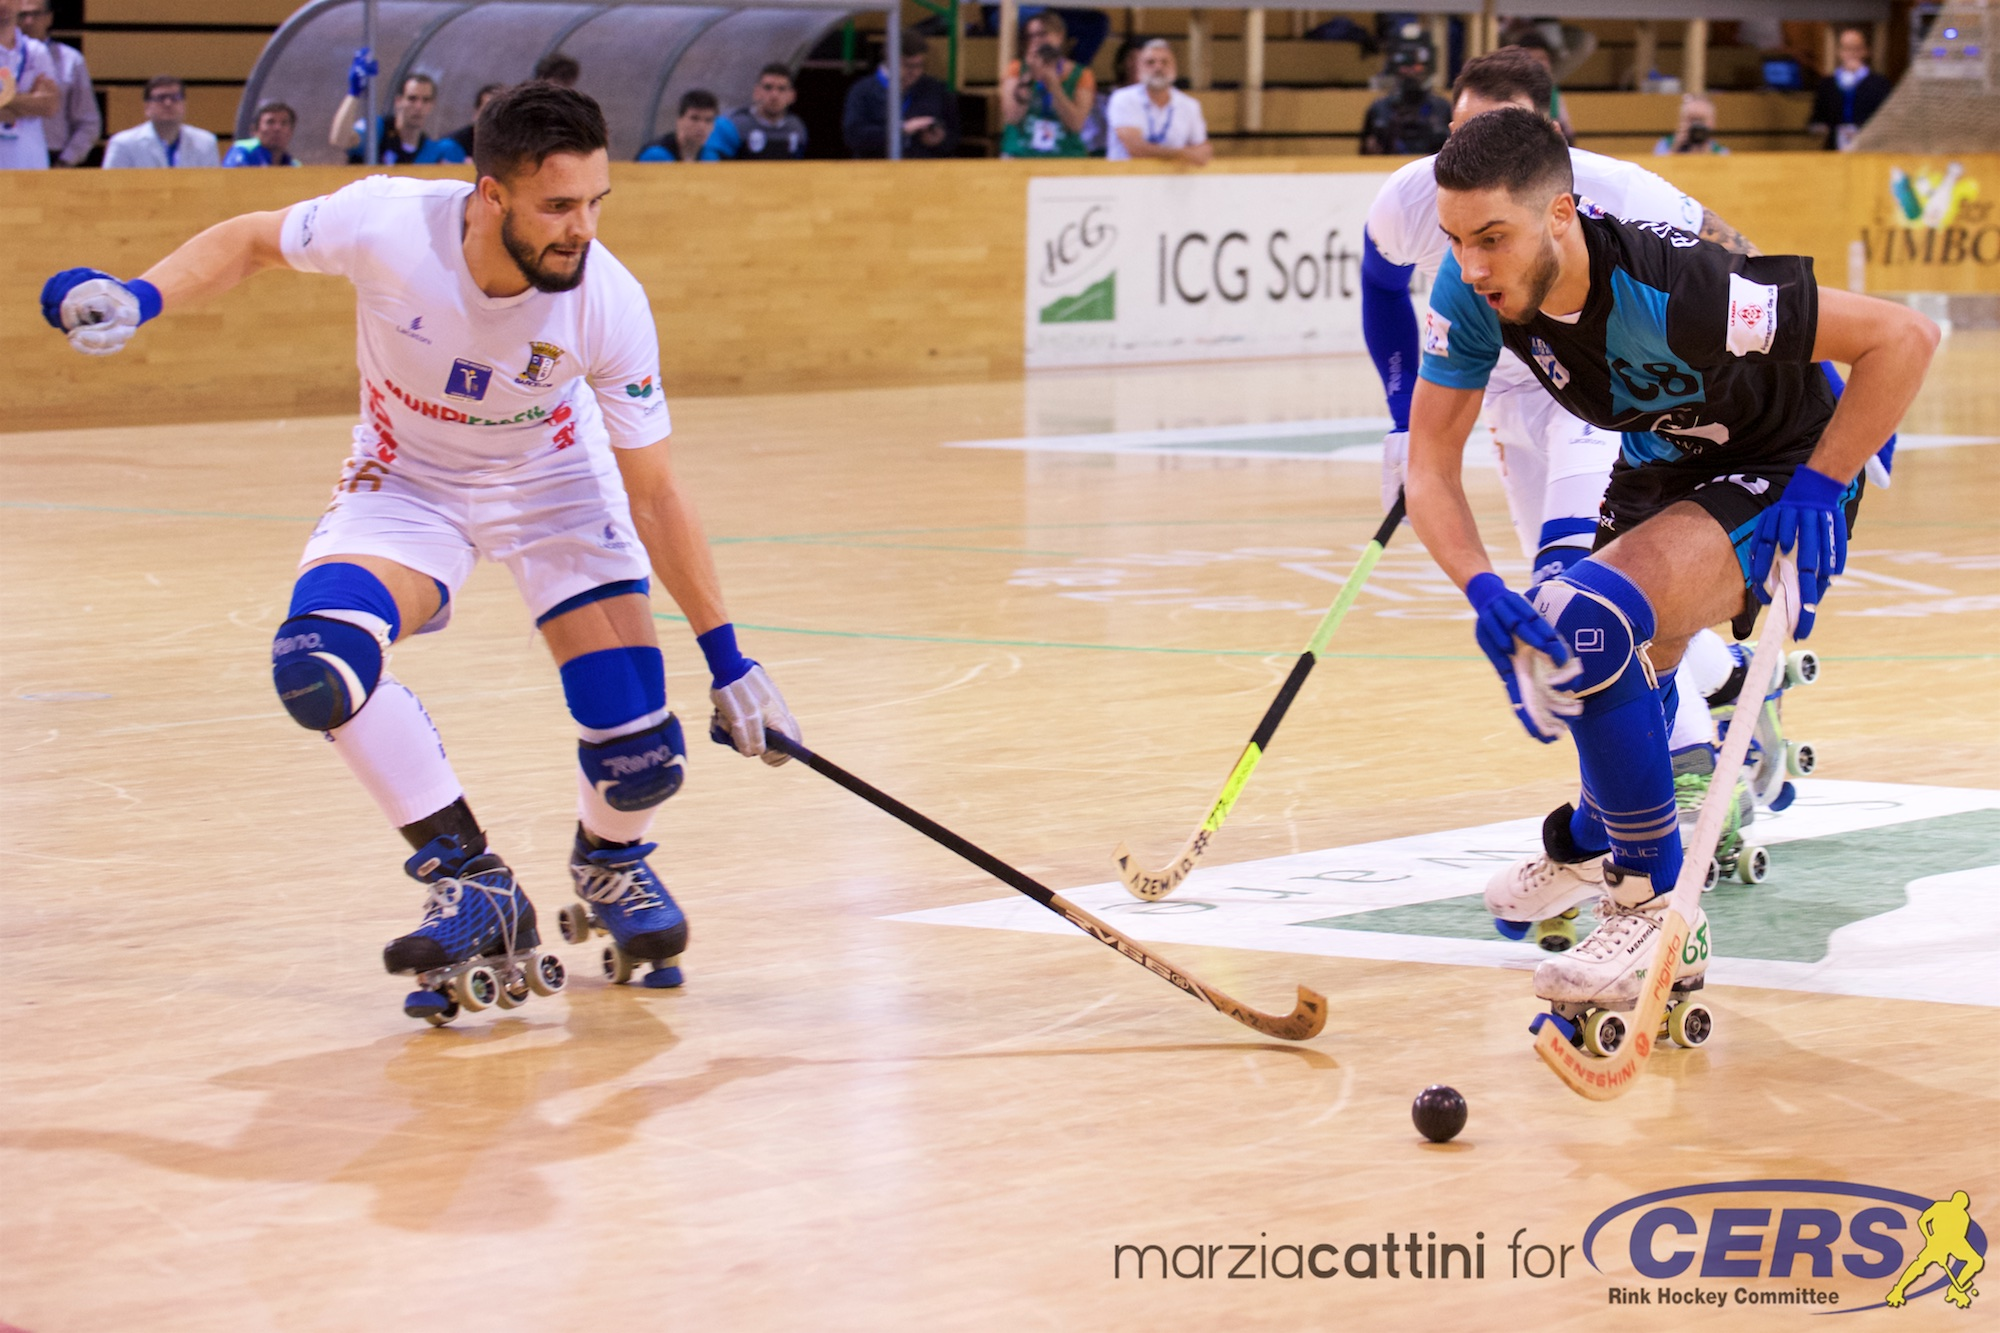 PHOTOS – 28/04/2018 – CERS CUP – Match #121 – Final – OC Barcelos (PT) x Lleida Llista (SP) – Photos by Marzia Cattini